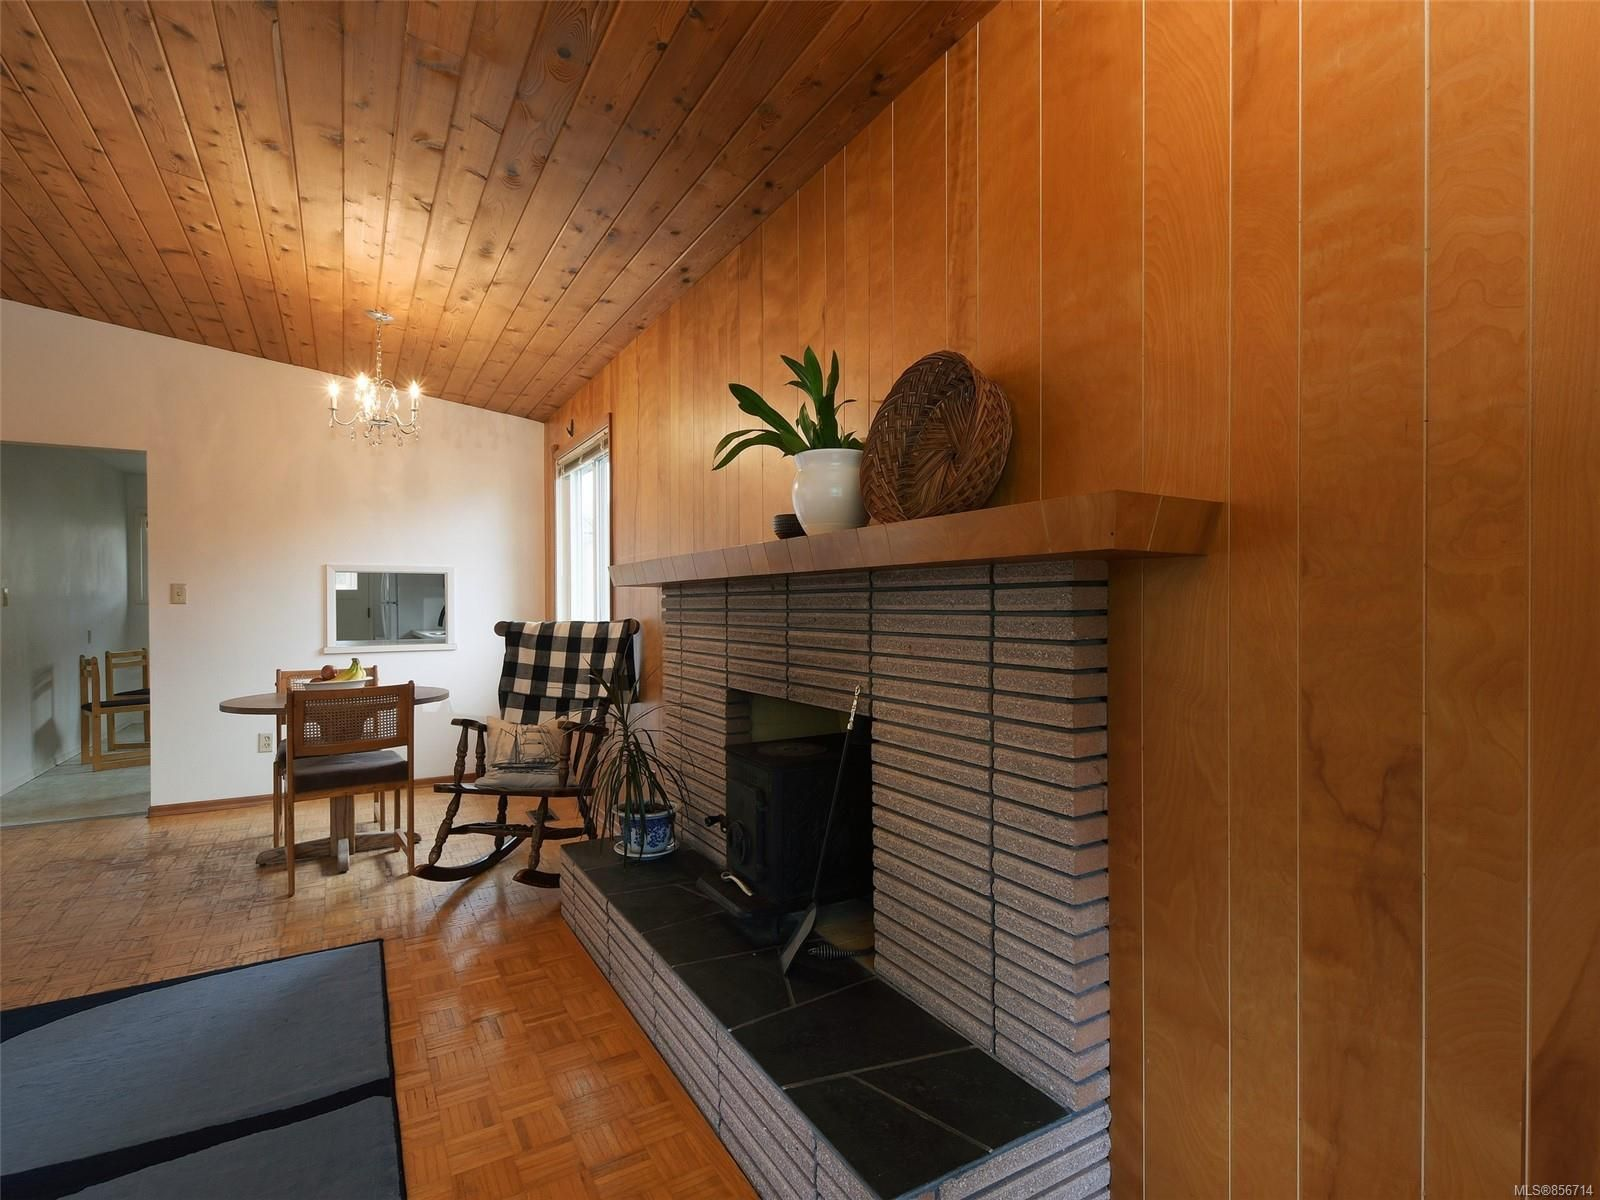 Photo 5: Photos: 3909 Ansell Rd in : SE Mt Tolmie House for sale (Saanich East)  : MLS®# 856714